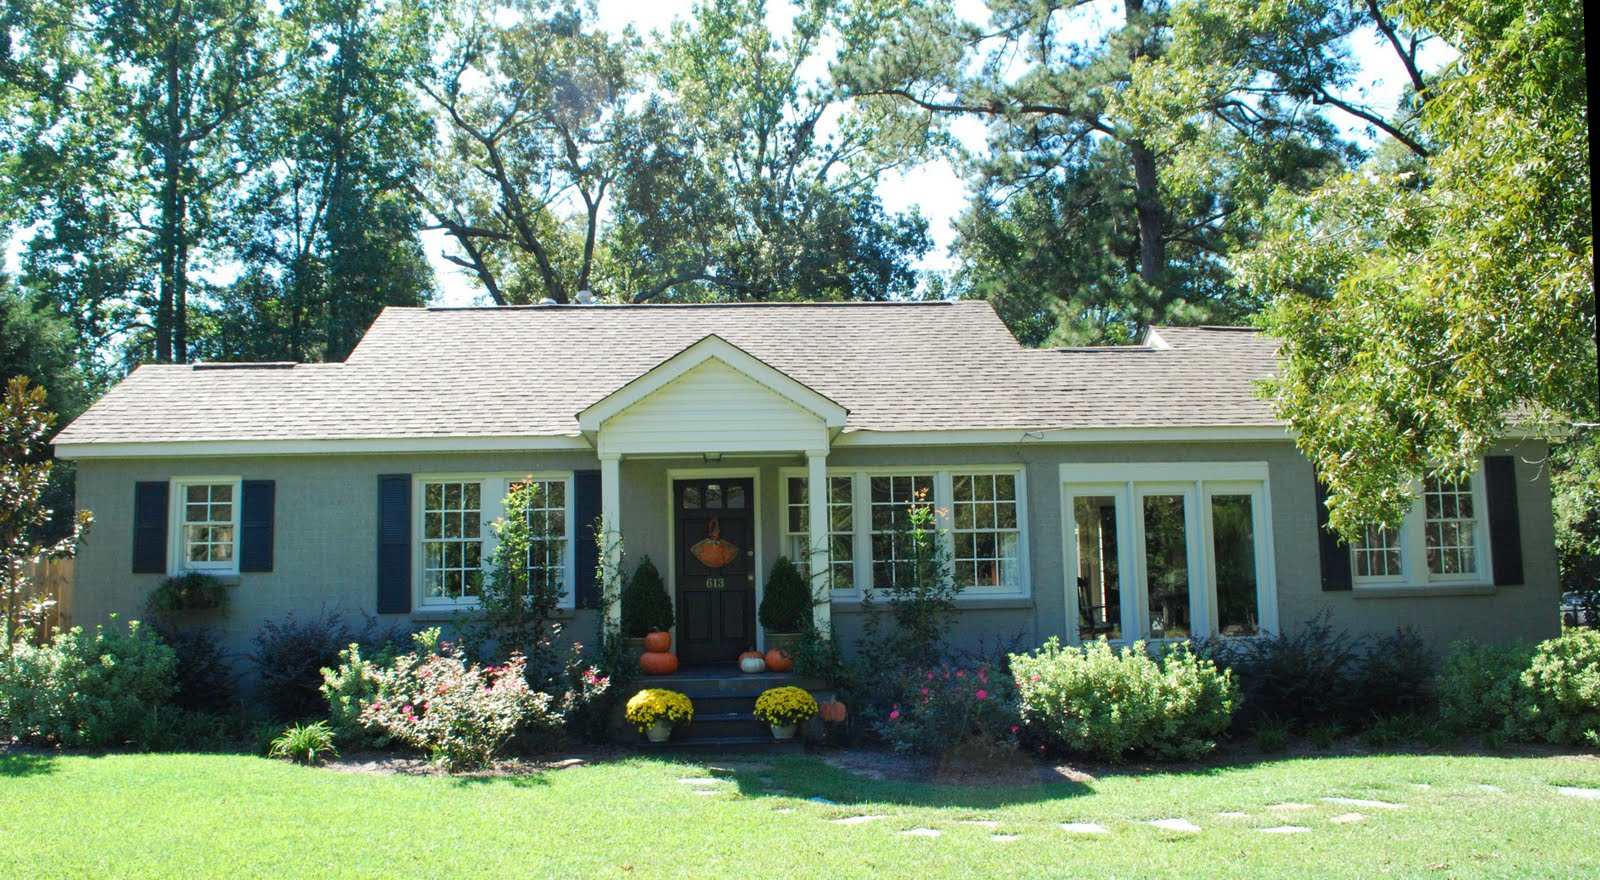 Exterior Paint Colors For Brick Homes   Home Painting Ideas on Brick House Painting Ideas  id=71472